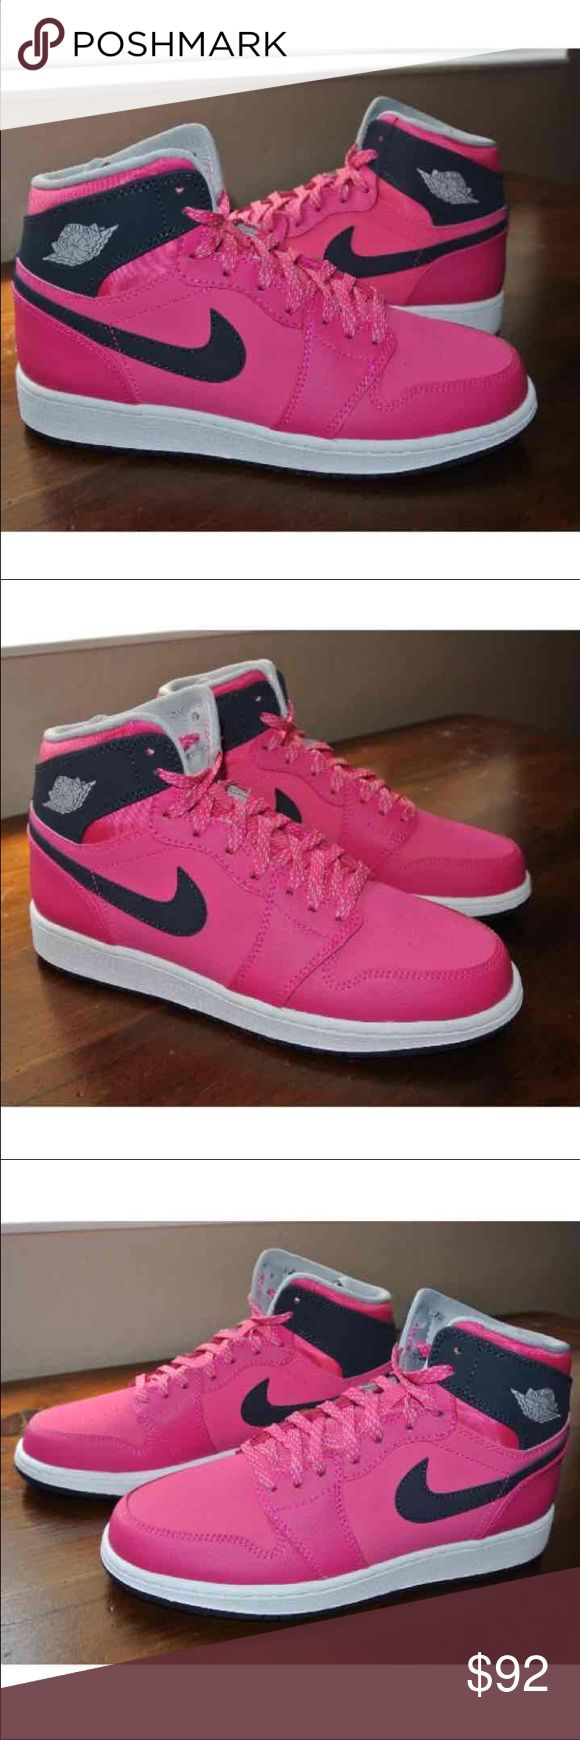 Jordan Retro 1 Vivid Pink 6.5Y Brand new without box. Vivid pink, obsidian, wolf gray and white. . This is a YOUTH 6.5 which will fit a women's 7.5-8. Nike Shoes Sneakers